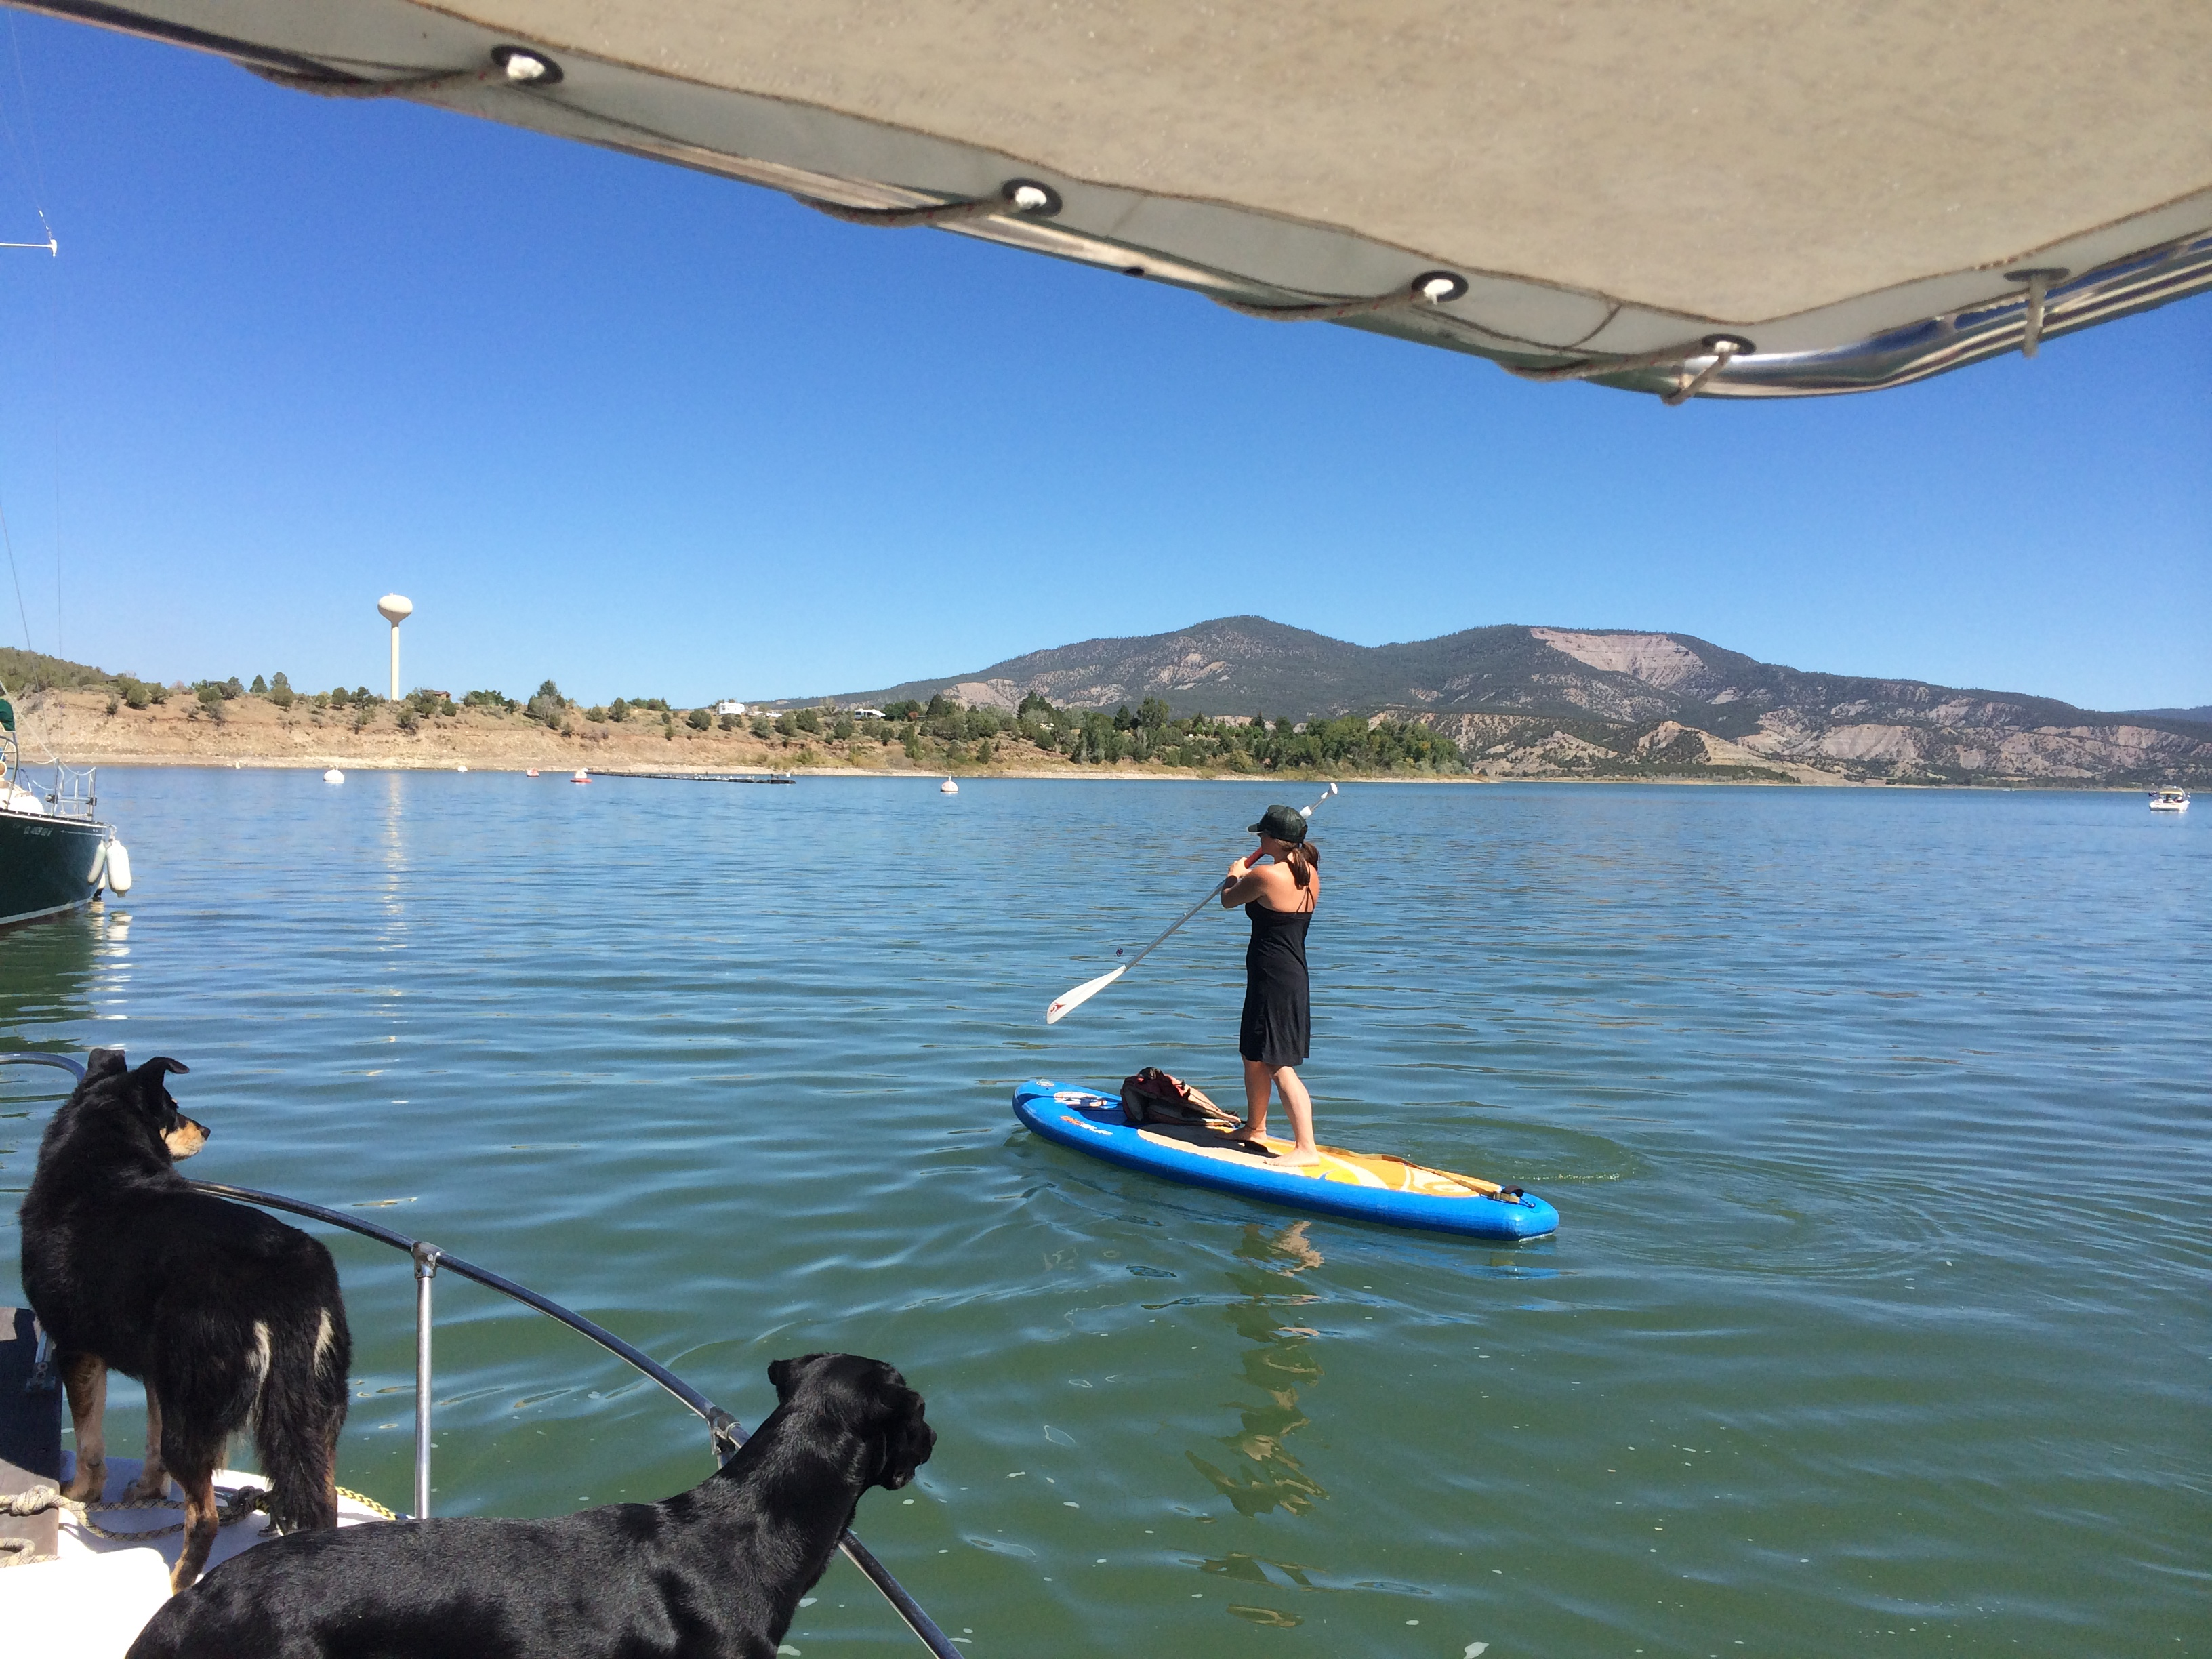 Paddleboarding off the boat